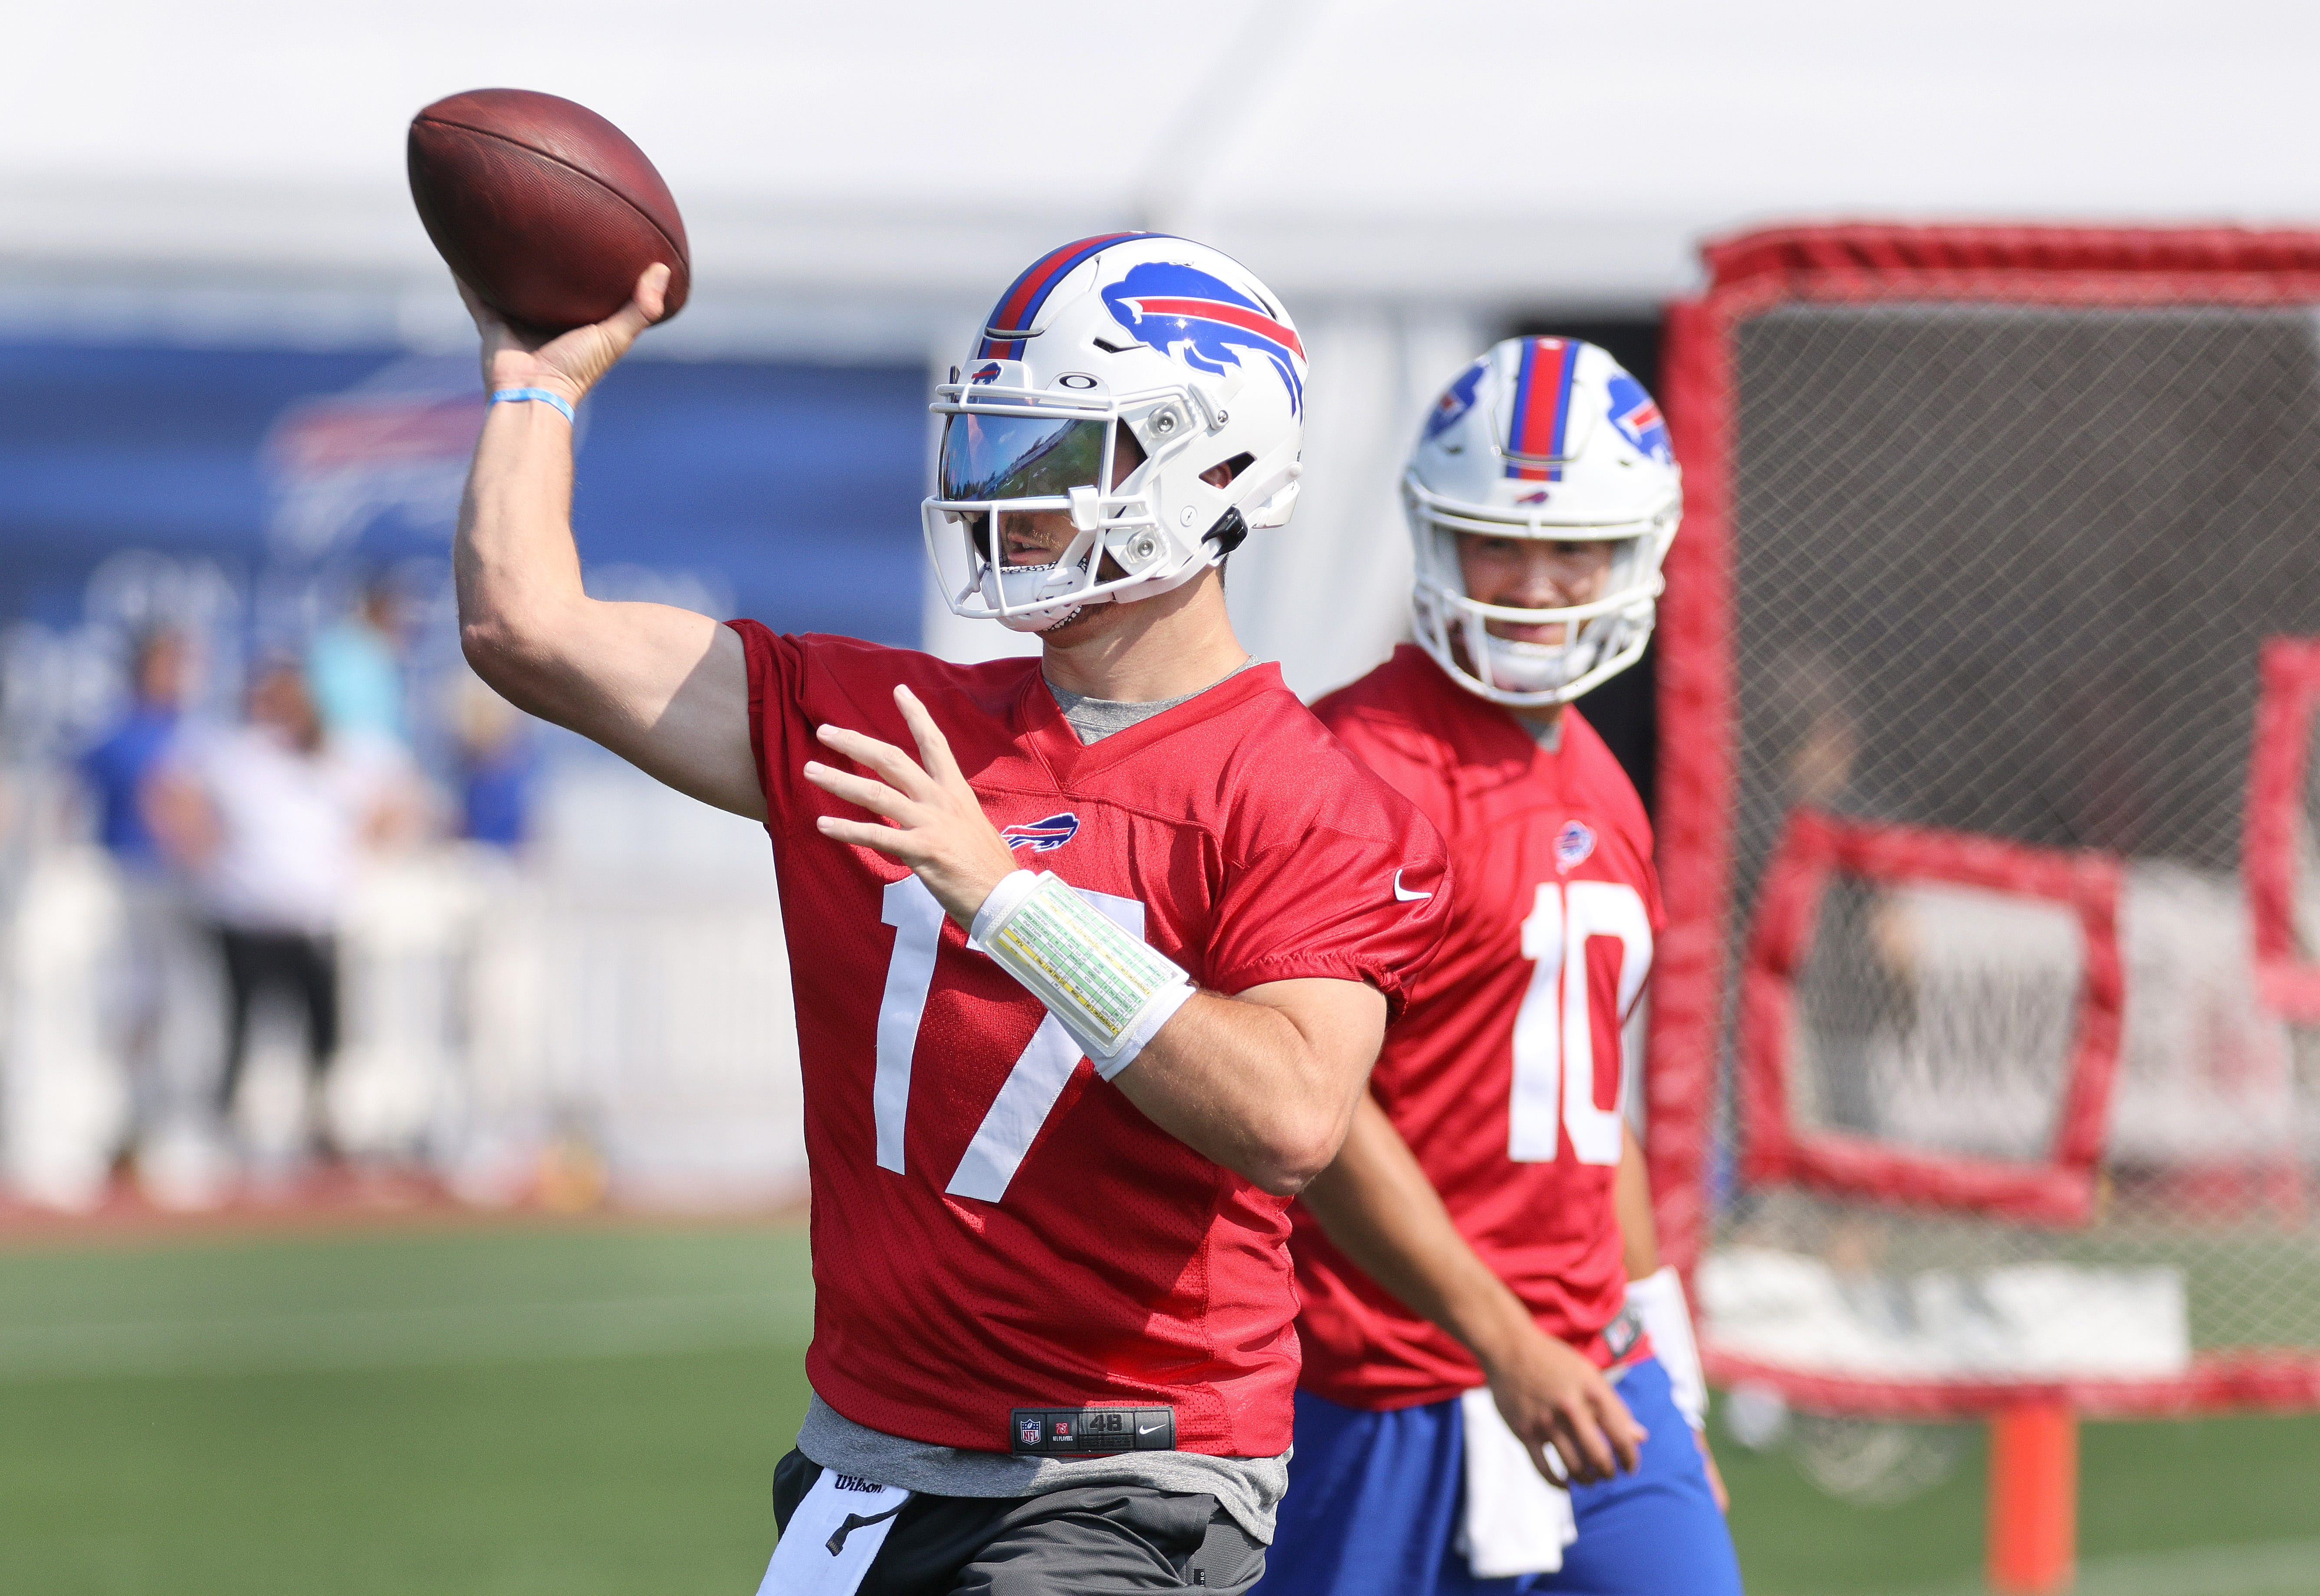 Mitchell Trubisky trying to reset his career as Josh Allen's backup in Buffalo